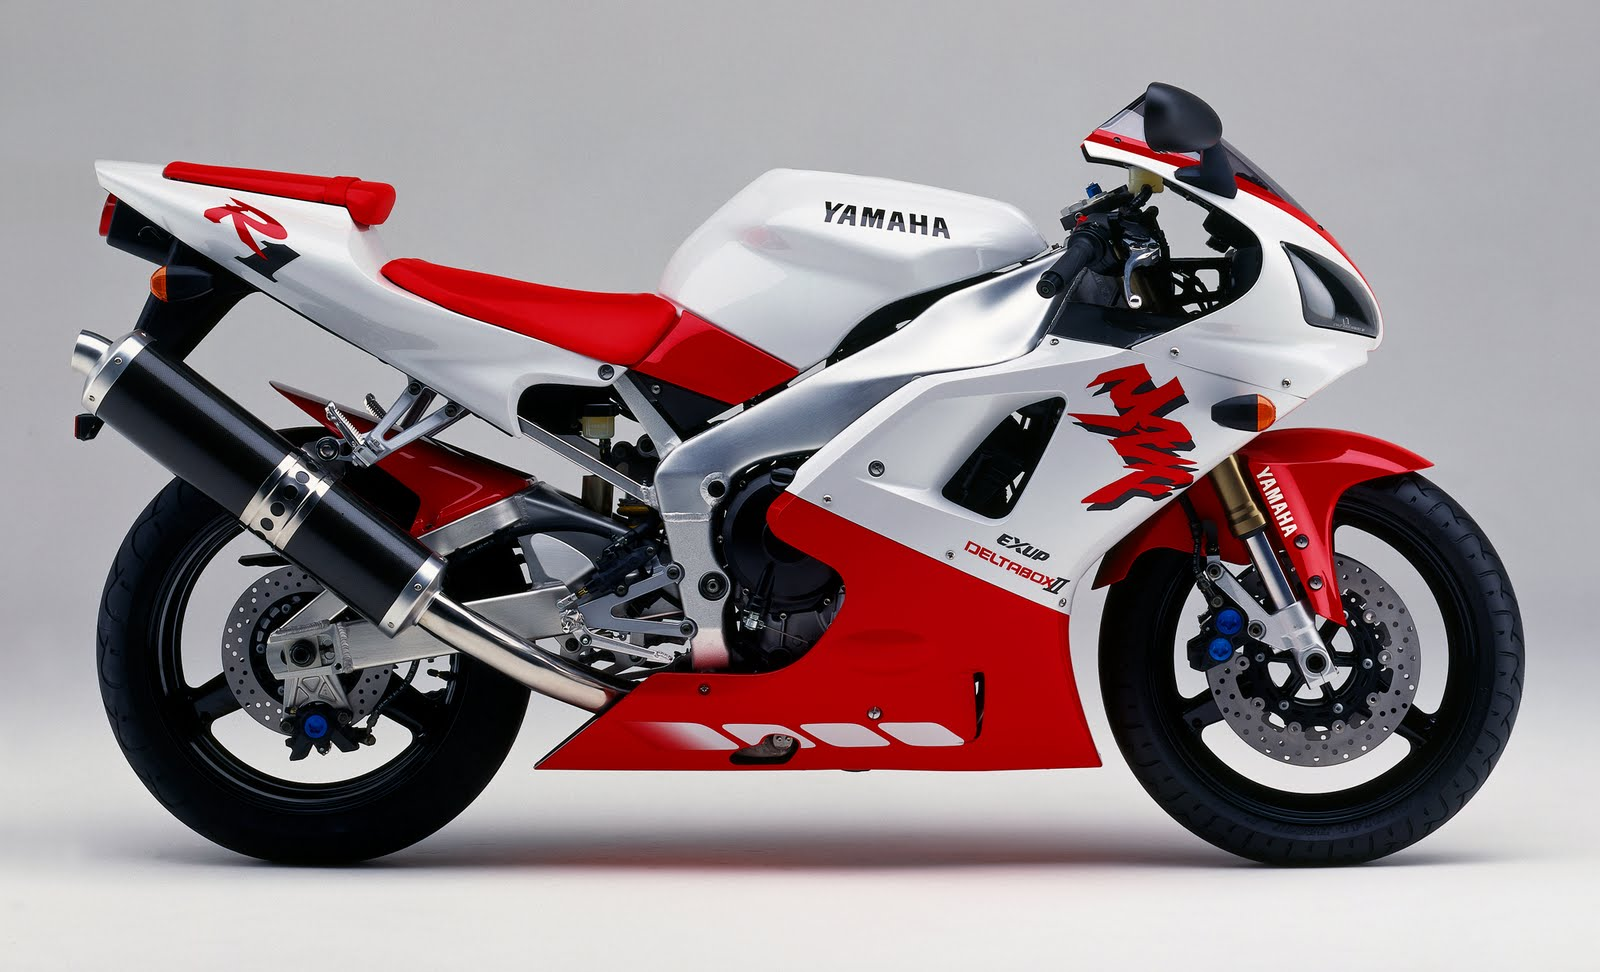 Will Yamahas 2015 R1 Be As Radical For Its Time The Original